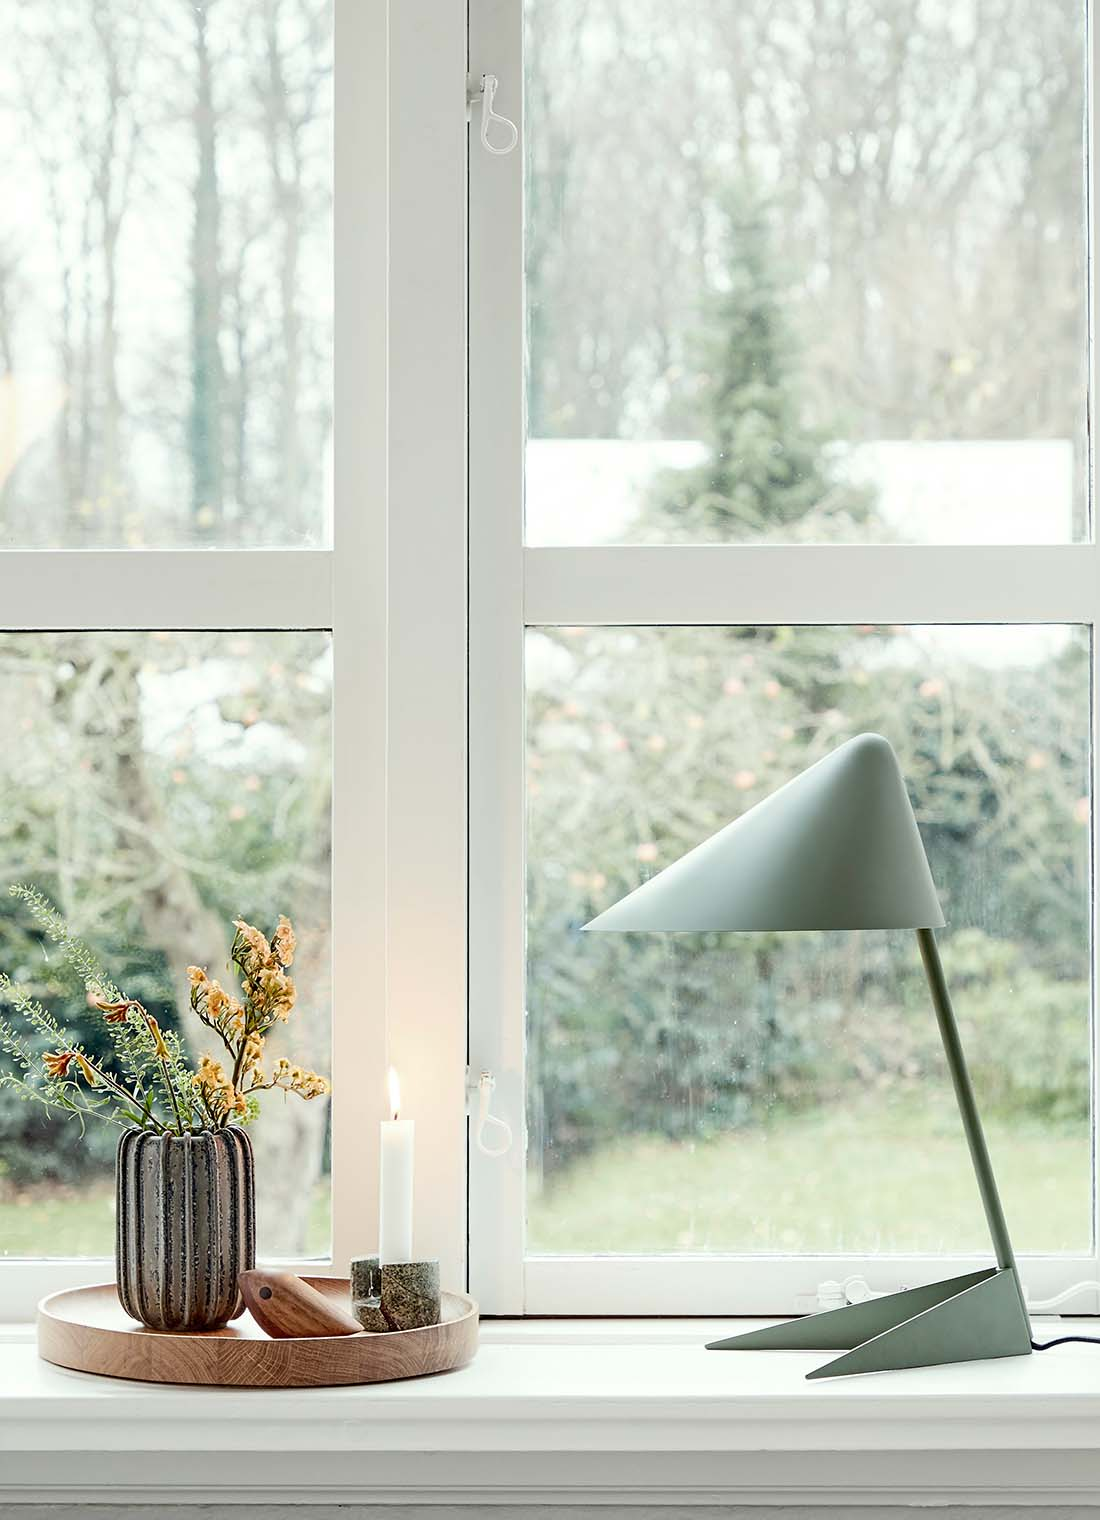 Ambience table lamp in windowsill